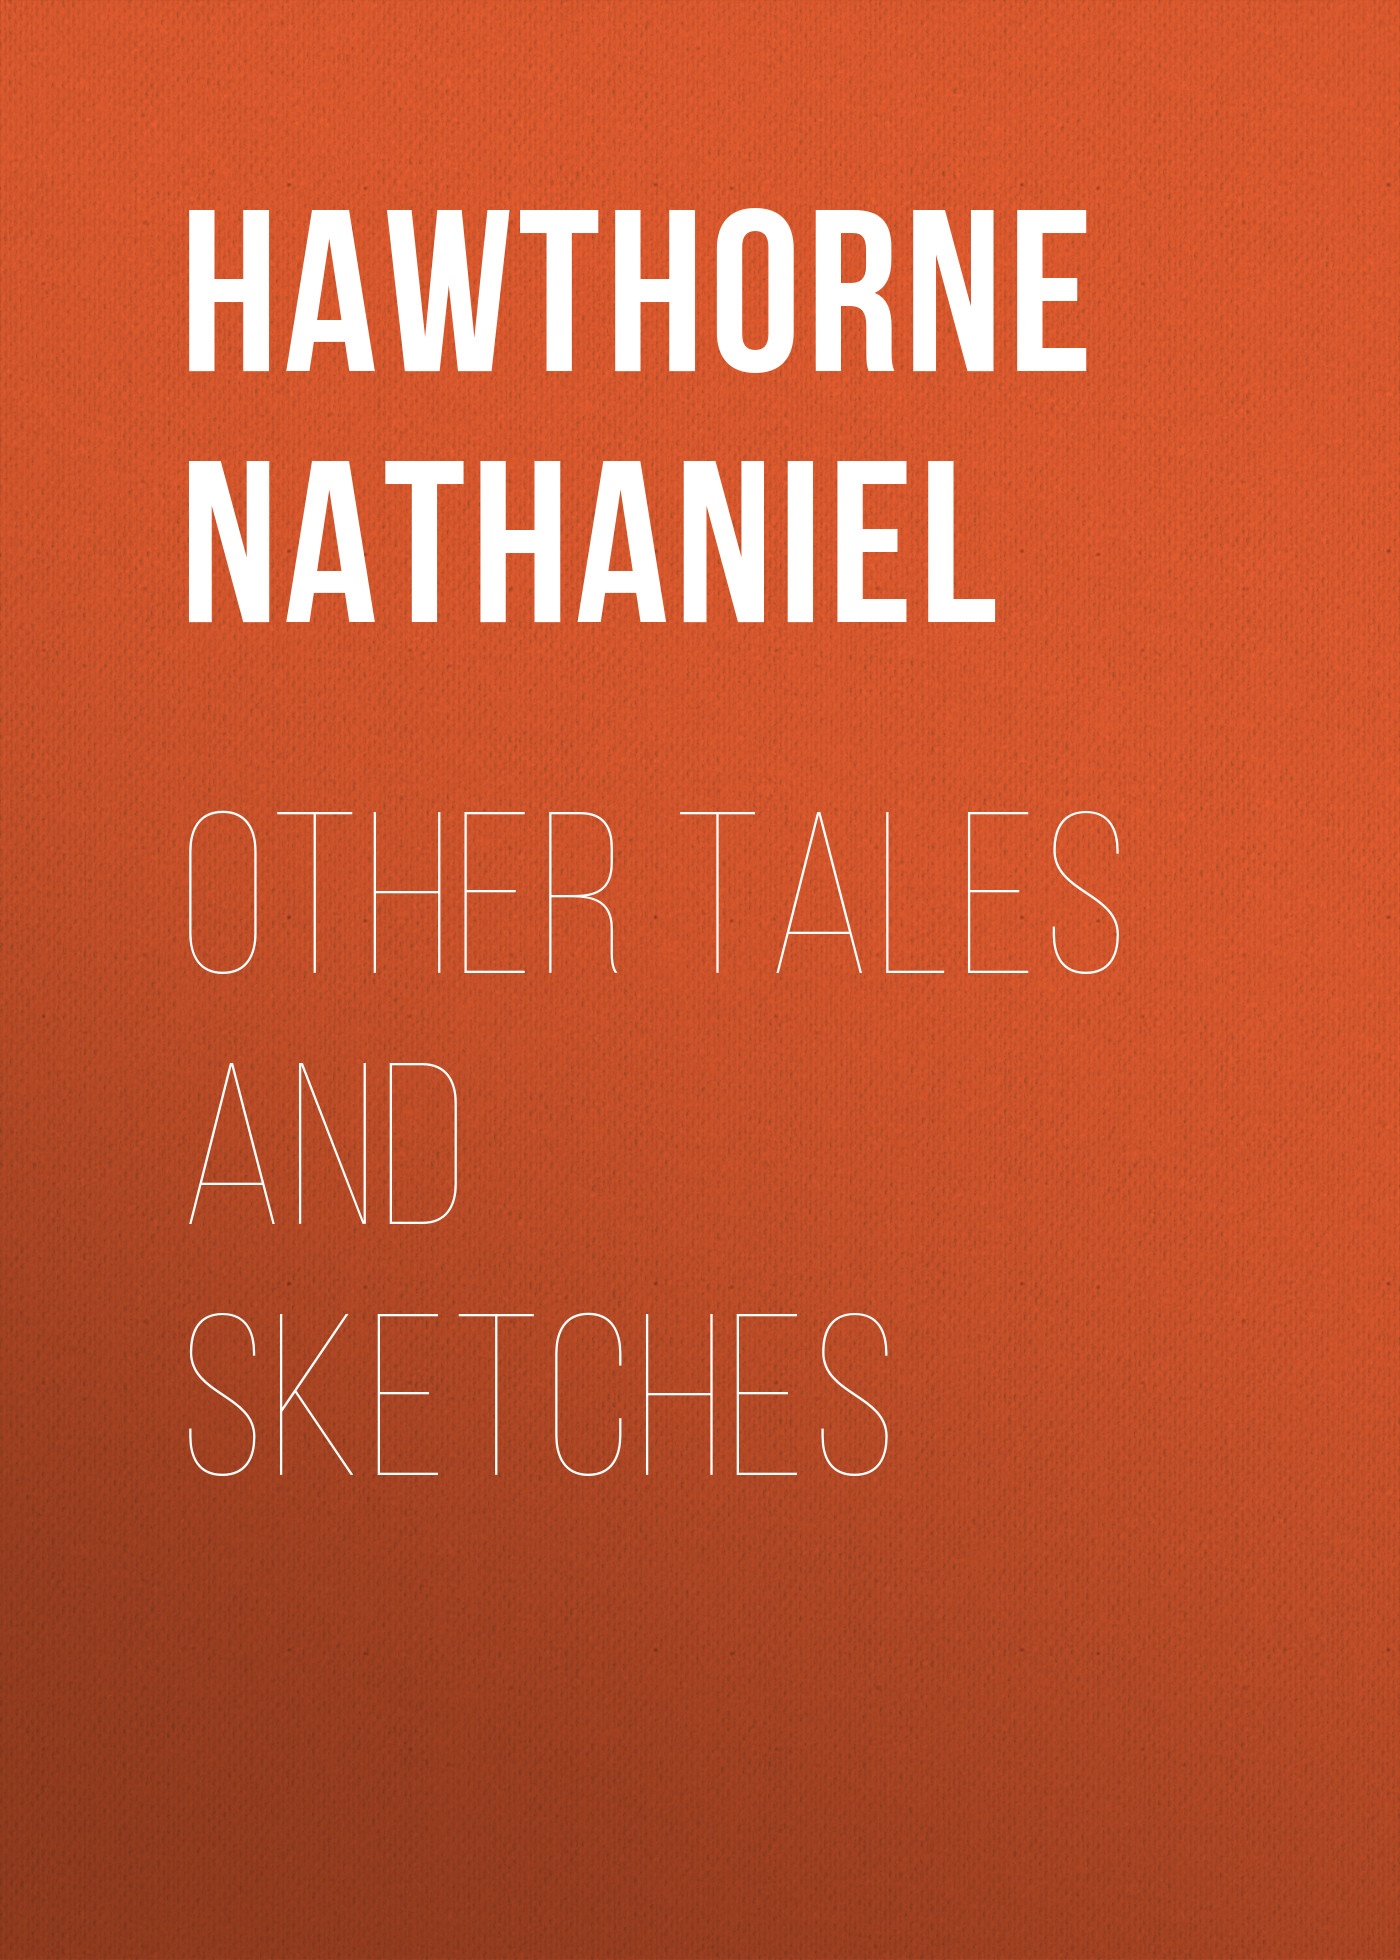 Hawthorne Nathaniel Other Tales and Sketches tales speeches essays and sketches